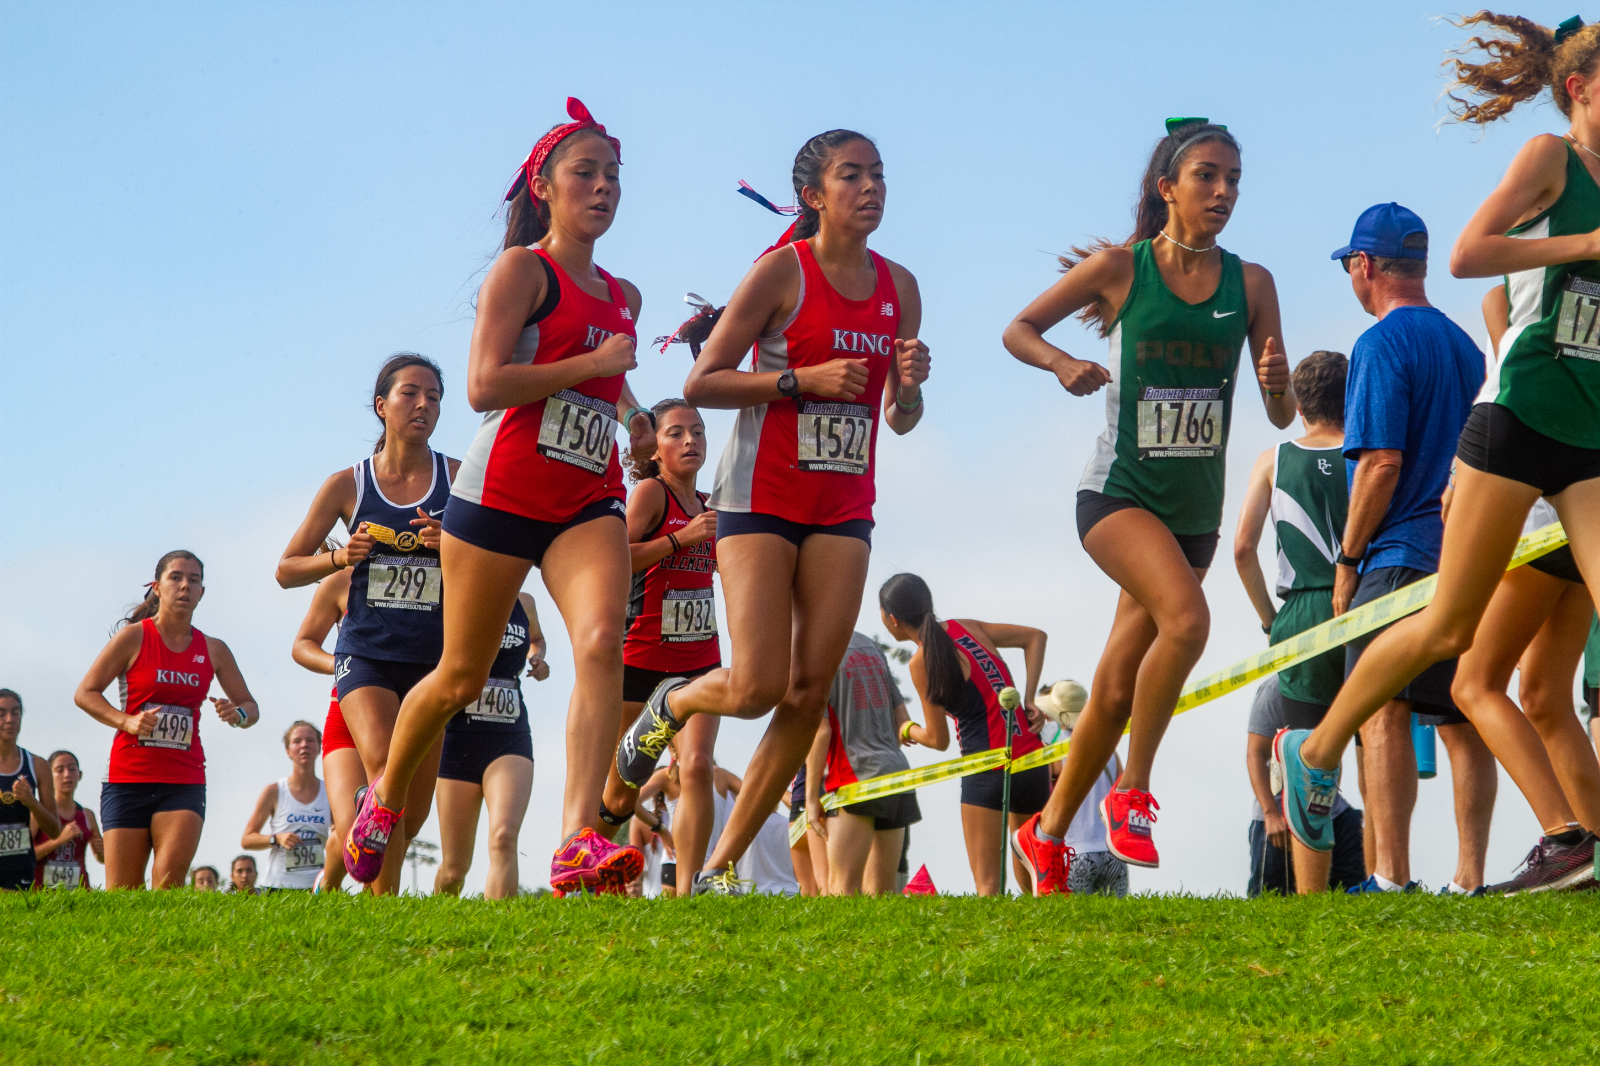 CROSS COUNTRY TEAMS HOPING TO SET PACE FOR HIGH SCHOOL SPORTS SEASON